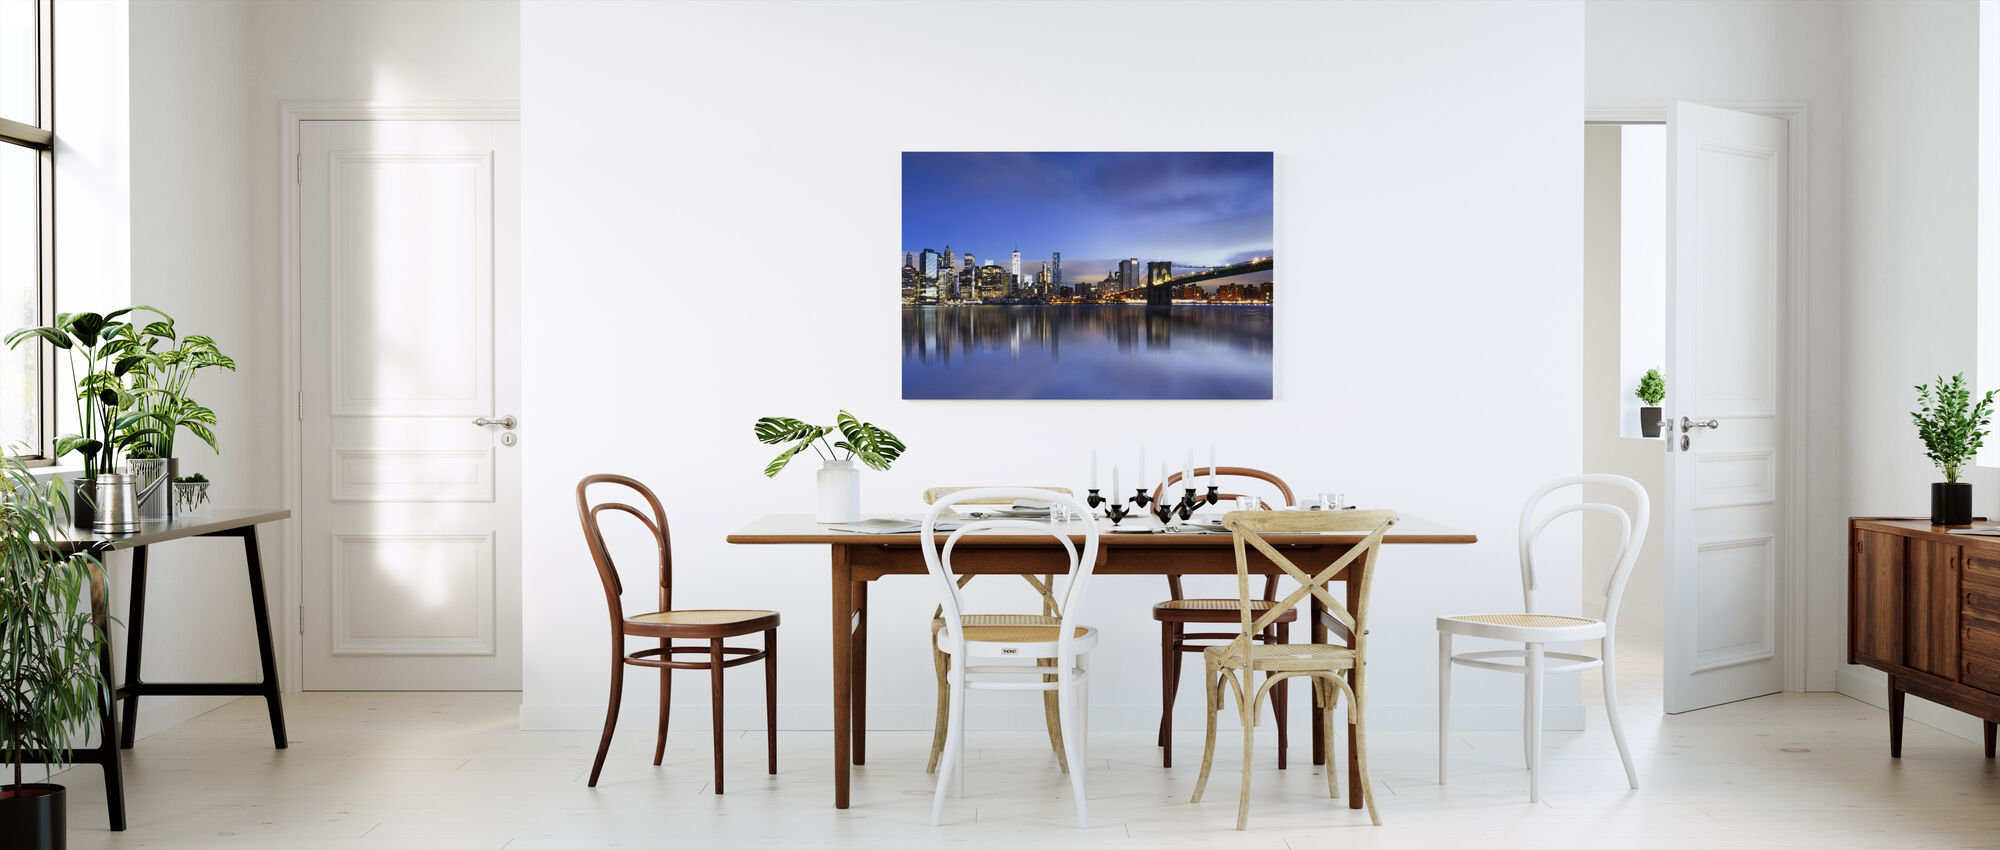 Blauwe zonsopgang over Manhattan - Canvas print - Keuken